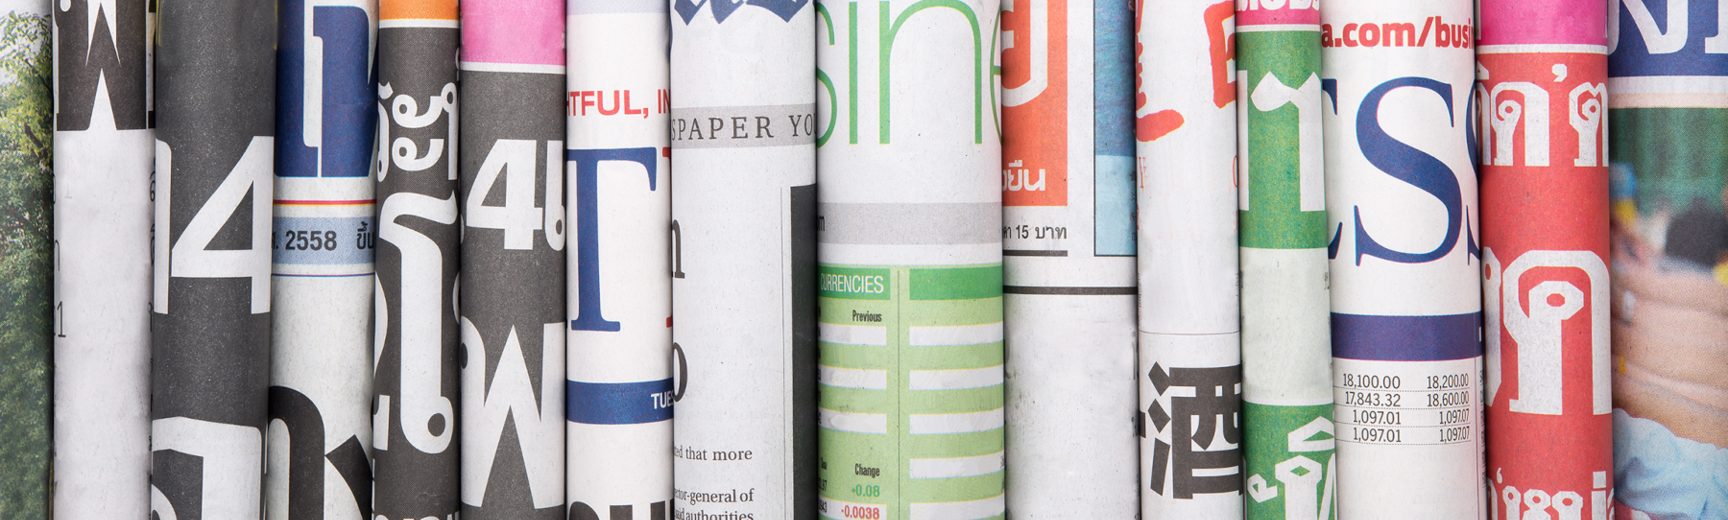 Newspaper article stack